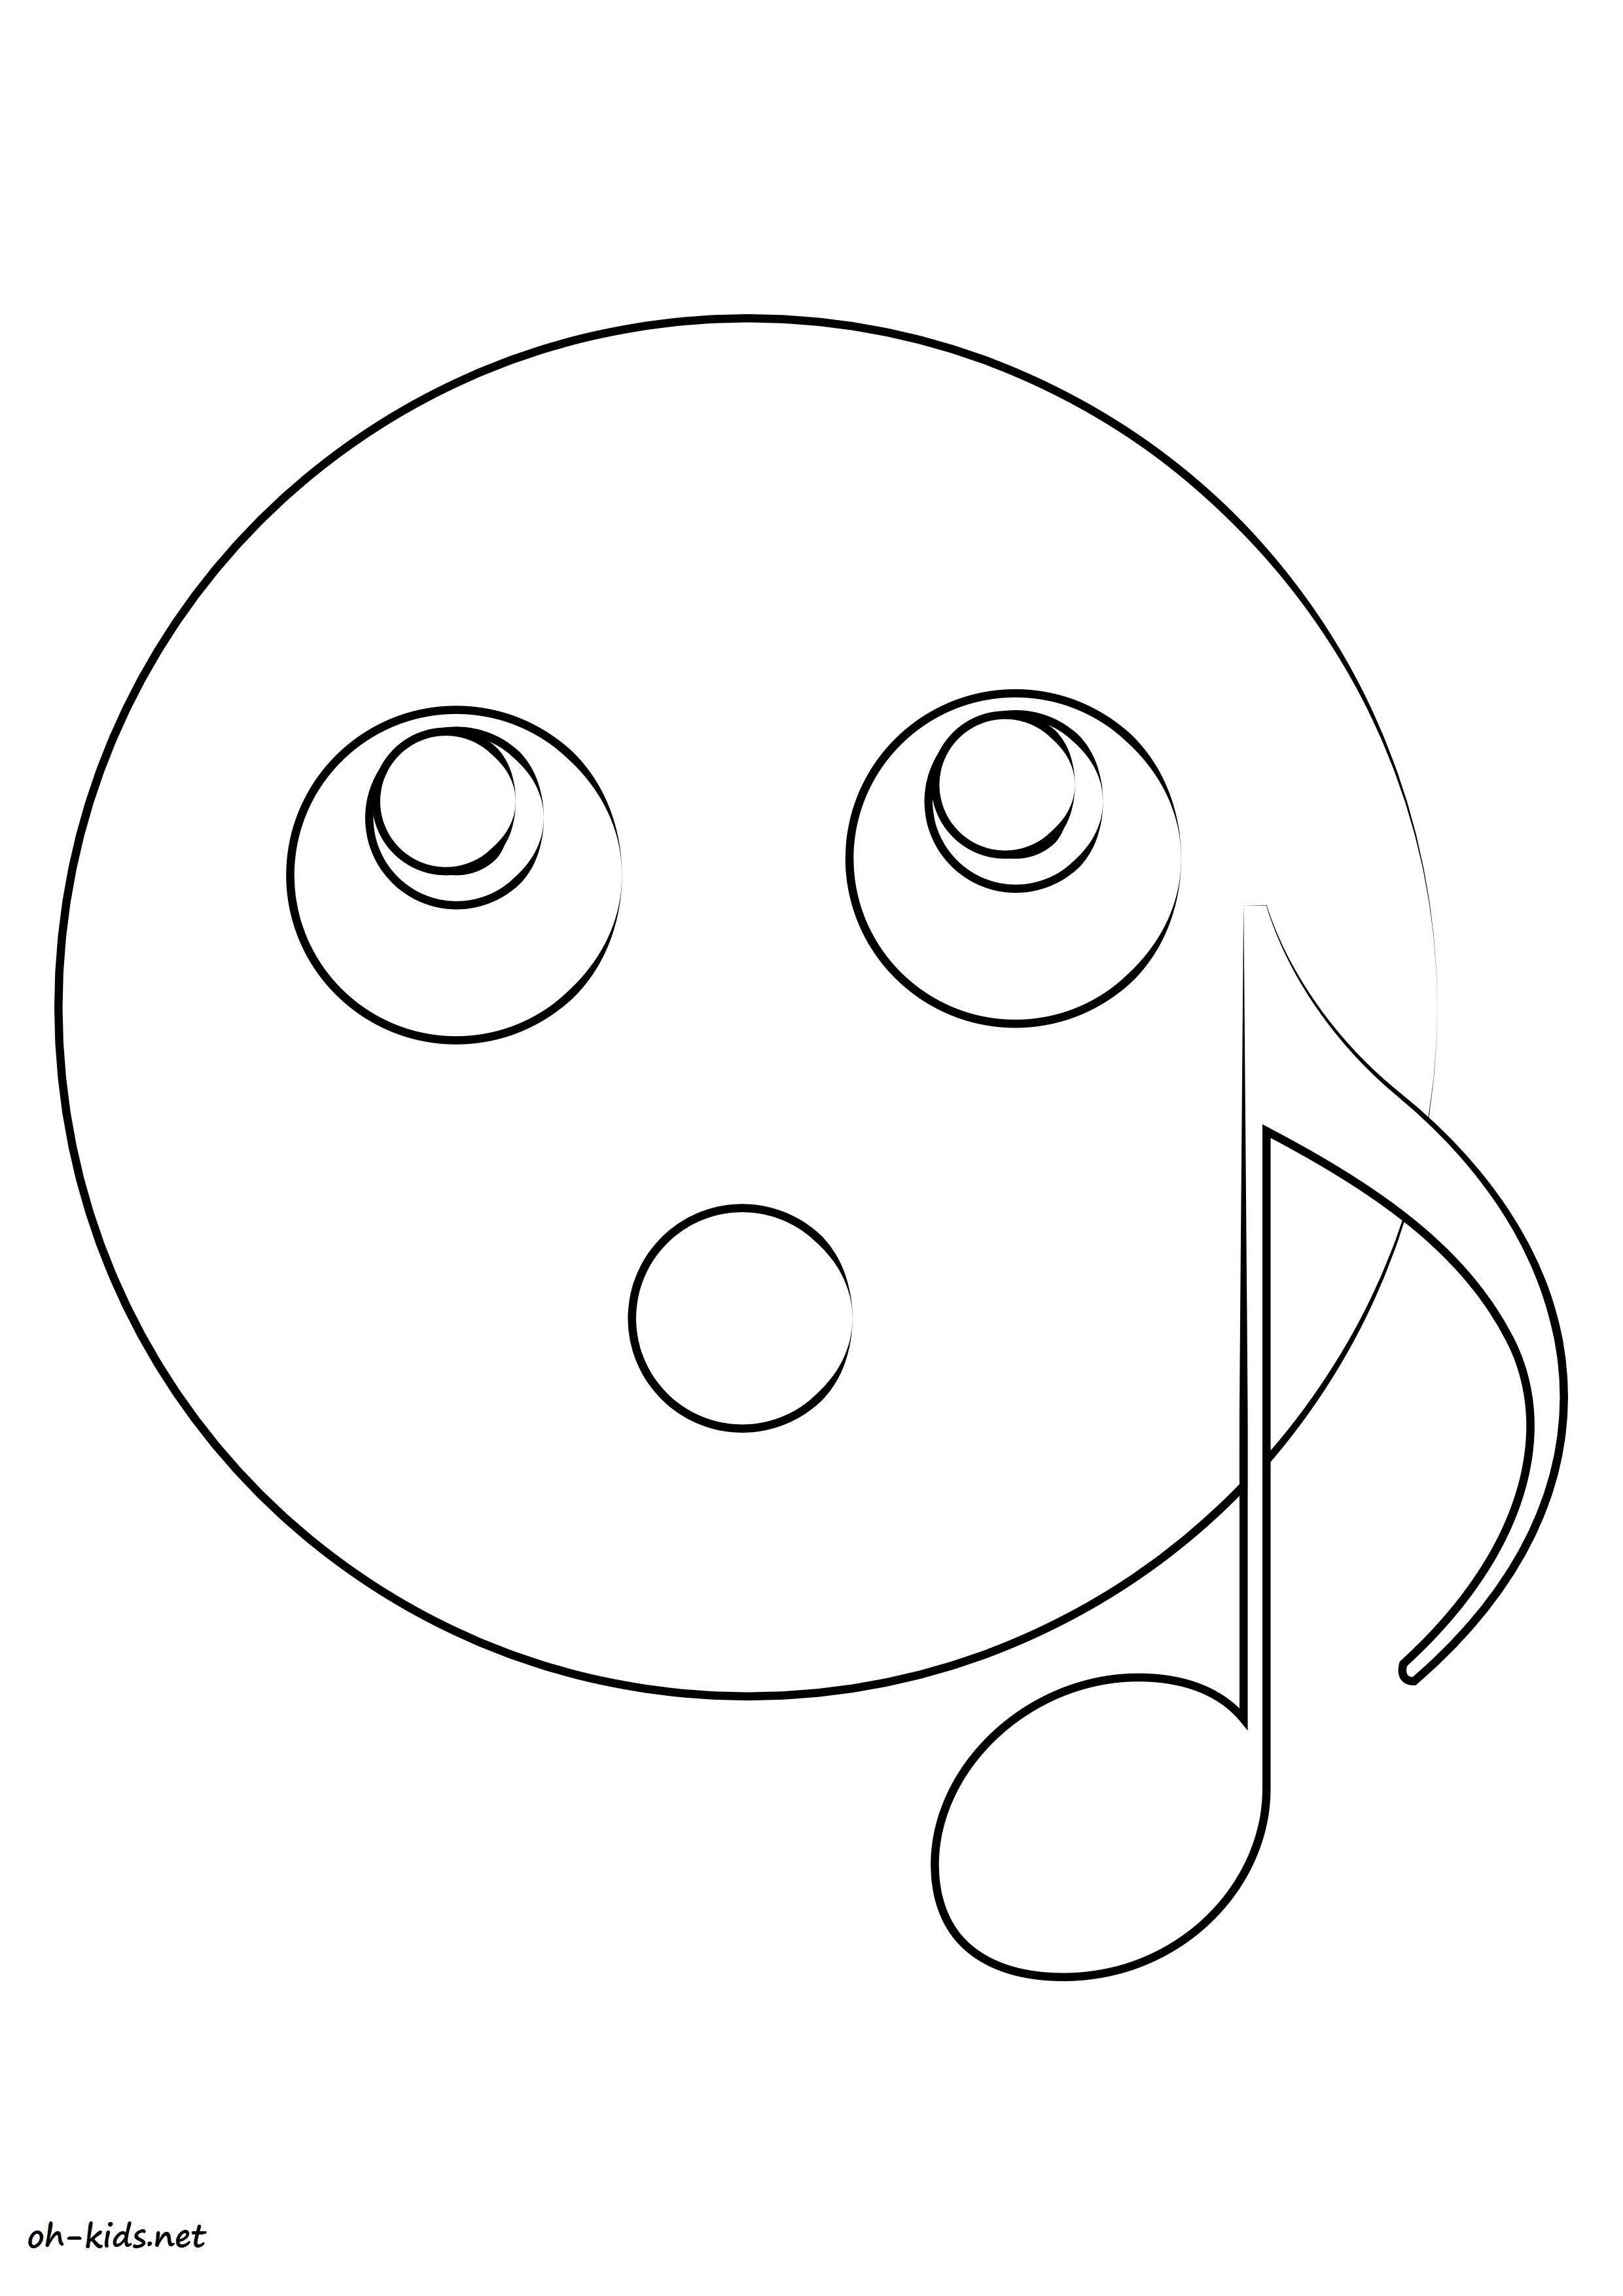 Coloriage smiley oh kids fr - Coloriage de smiley ...